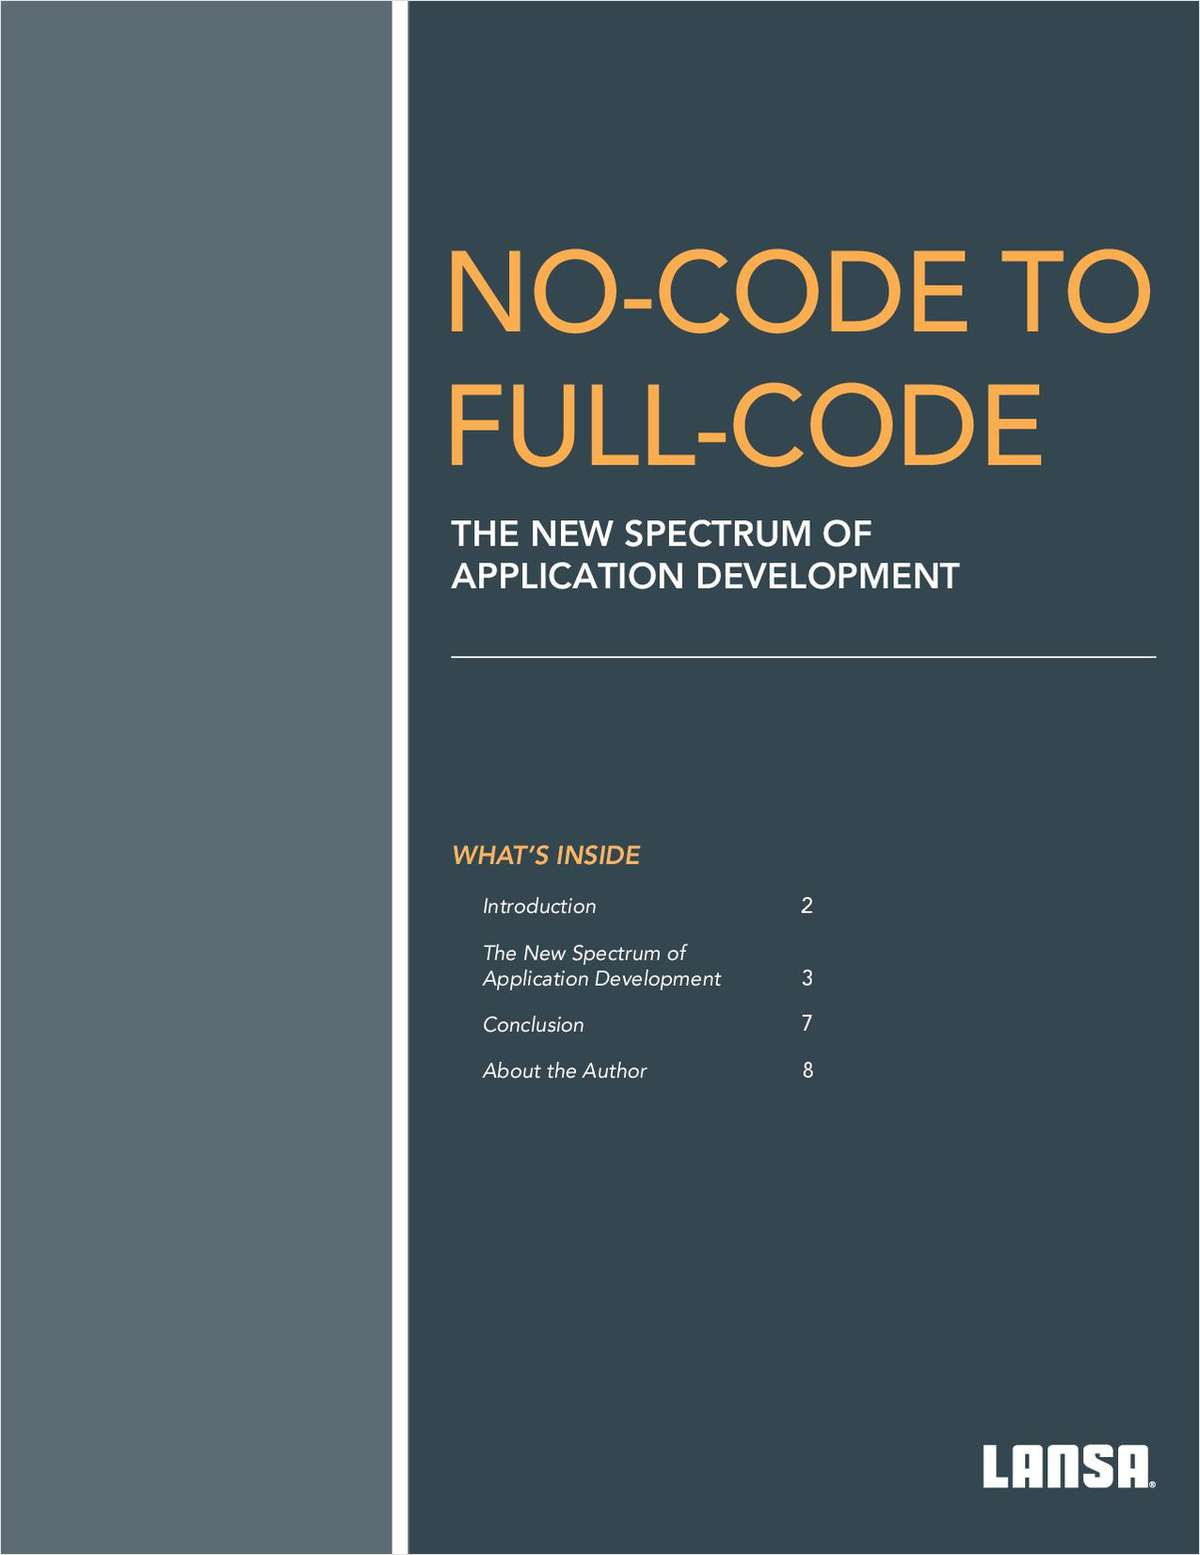 No-Code to Full-Code: The New Spectrum of Application Development